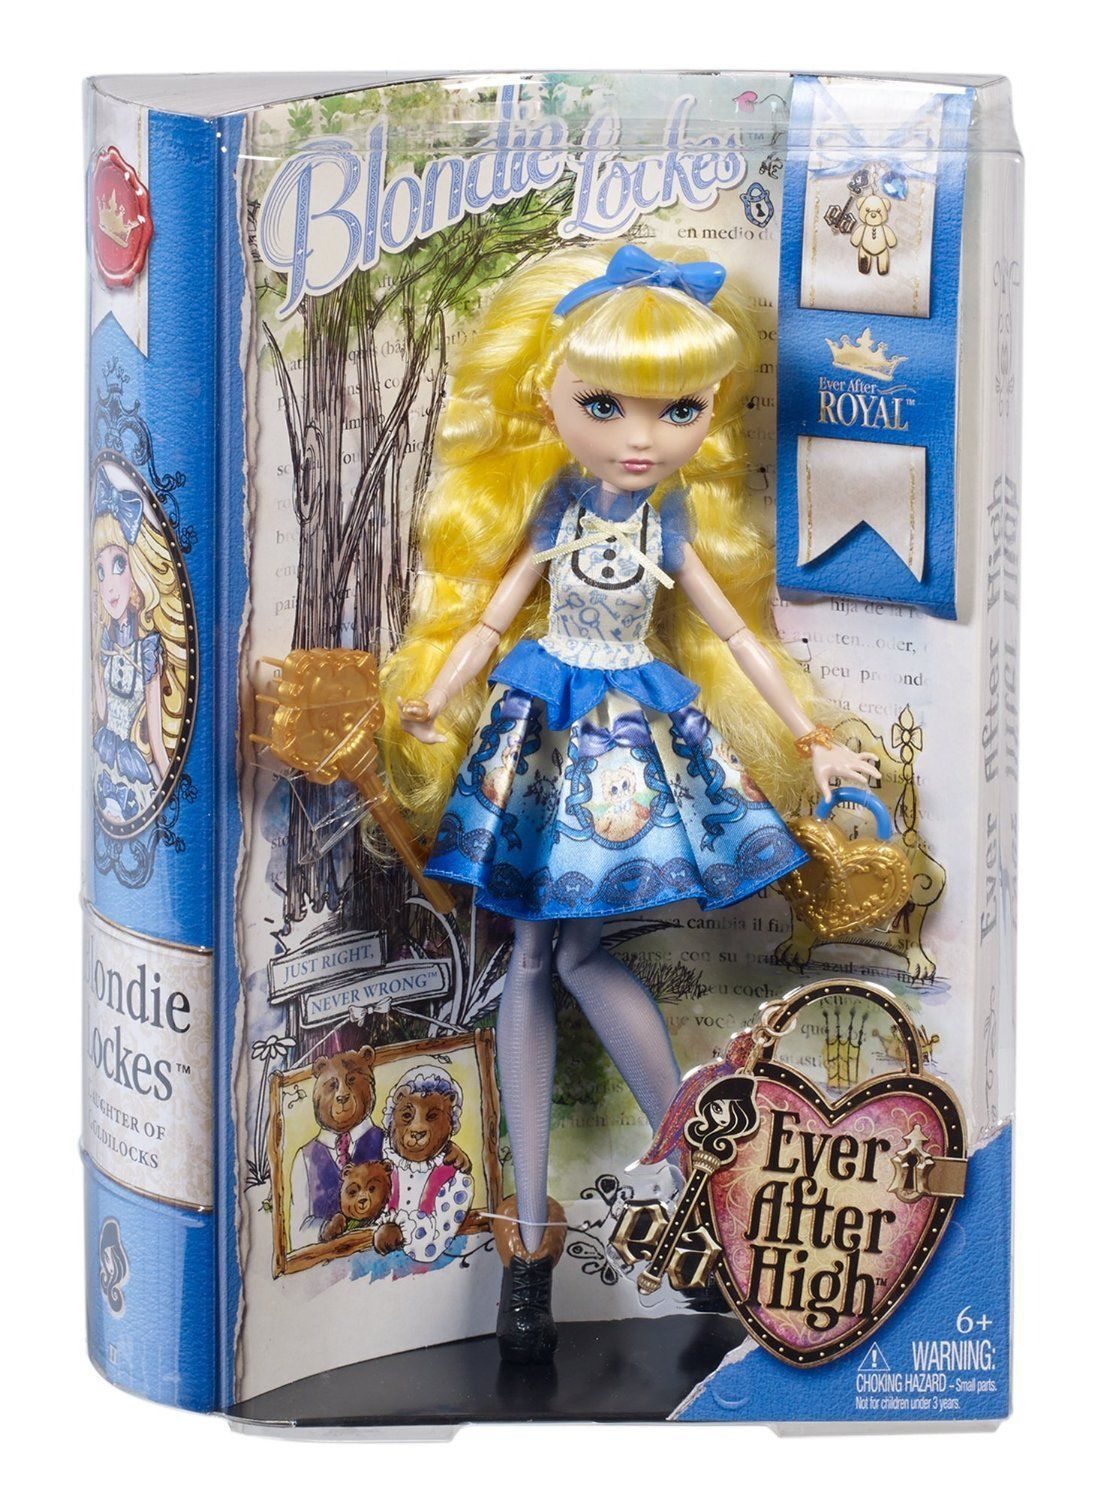 Ever After High Dolls Royal Blondie Lockes Doll